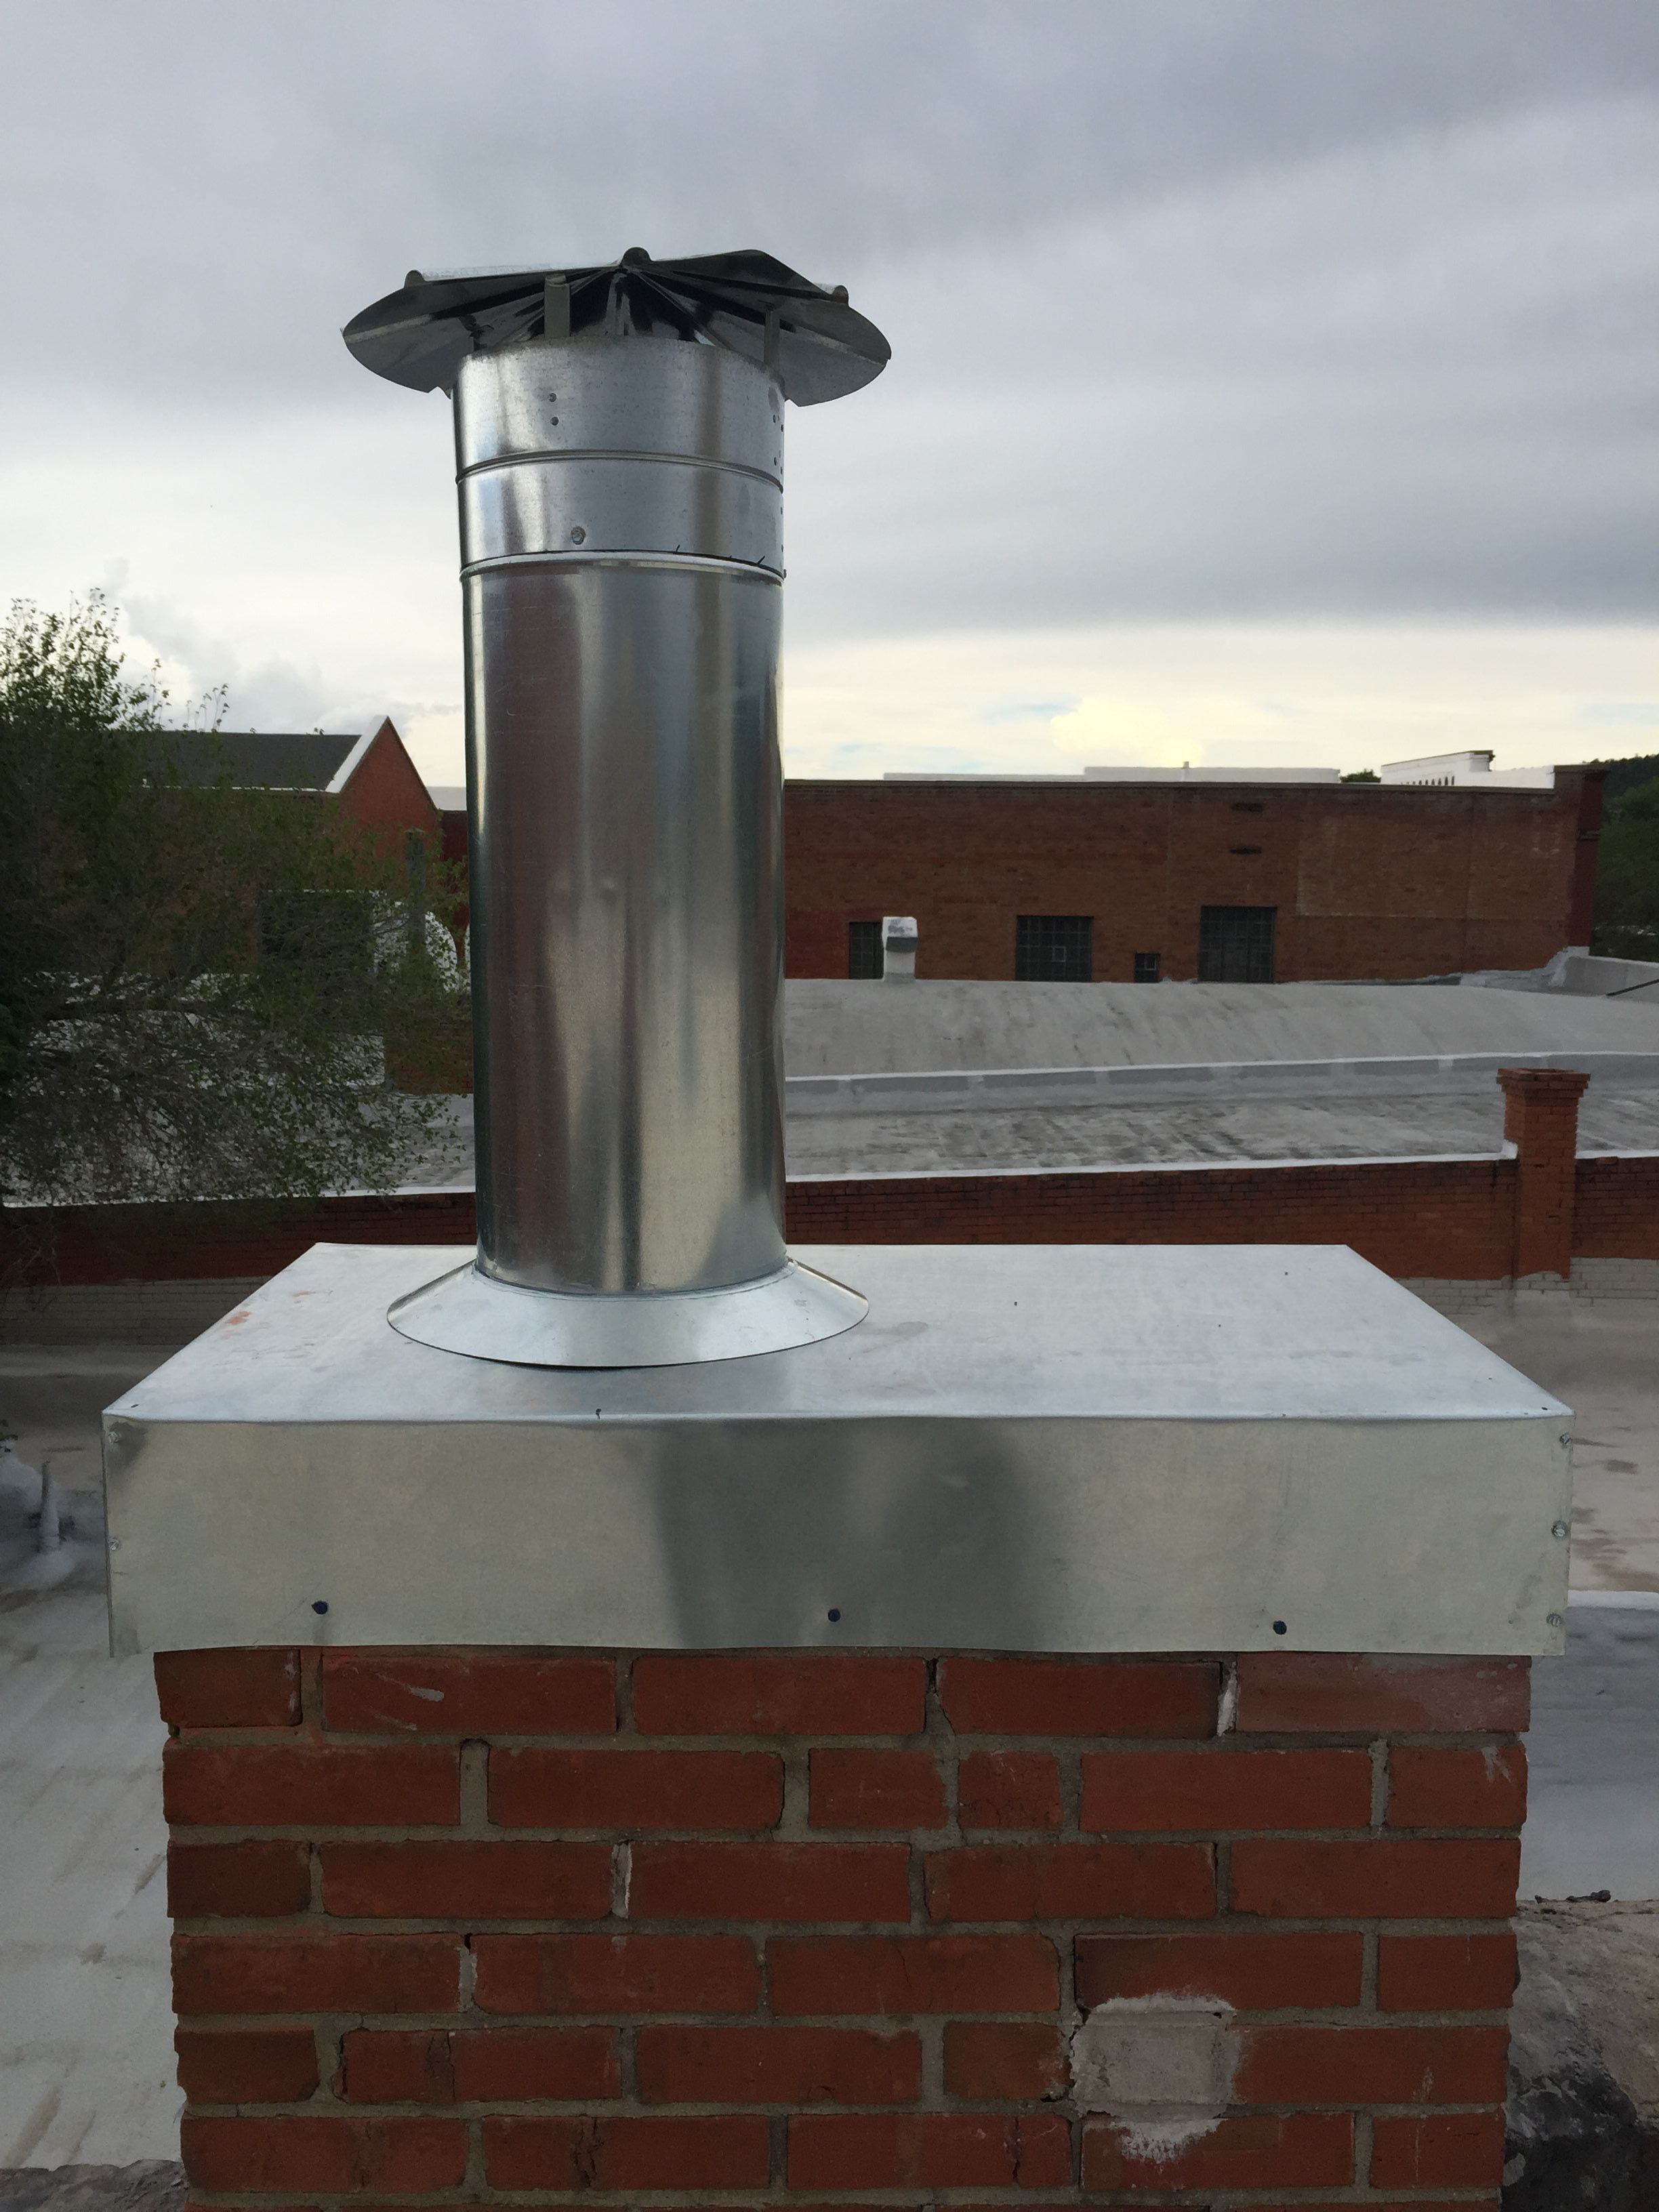 Chimney Cap and Vent Penetration